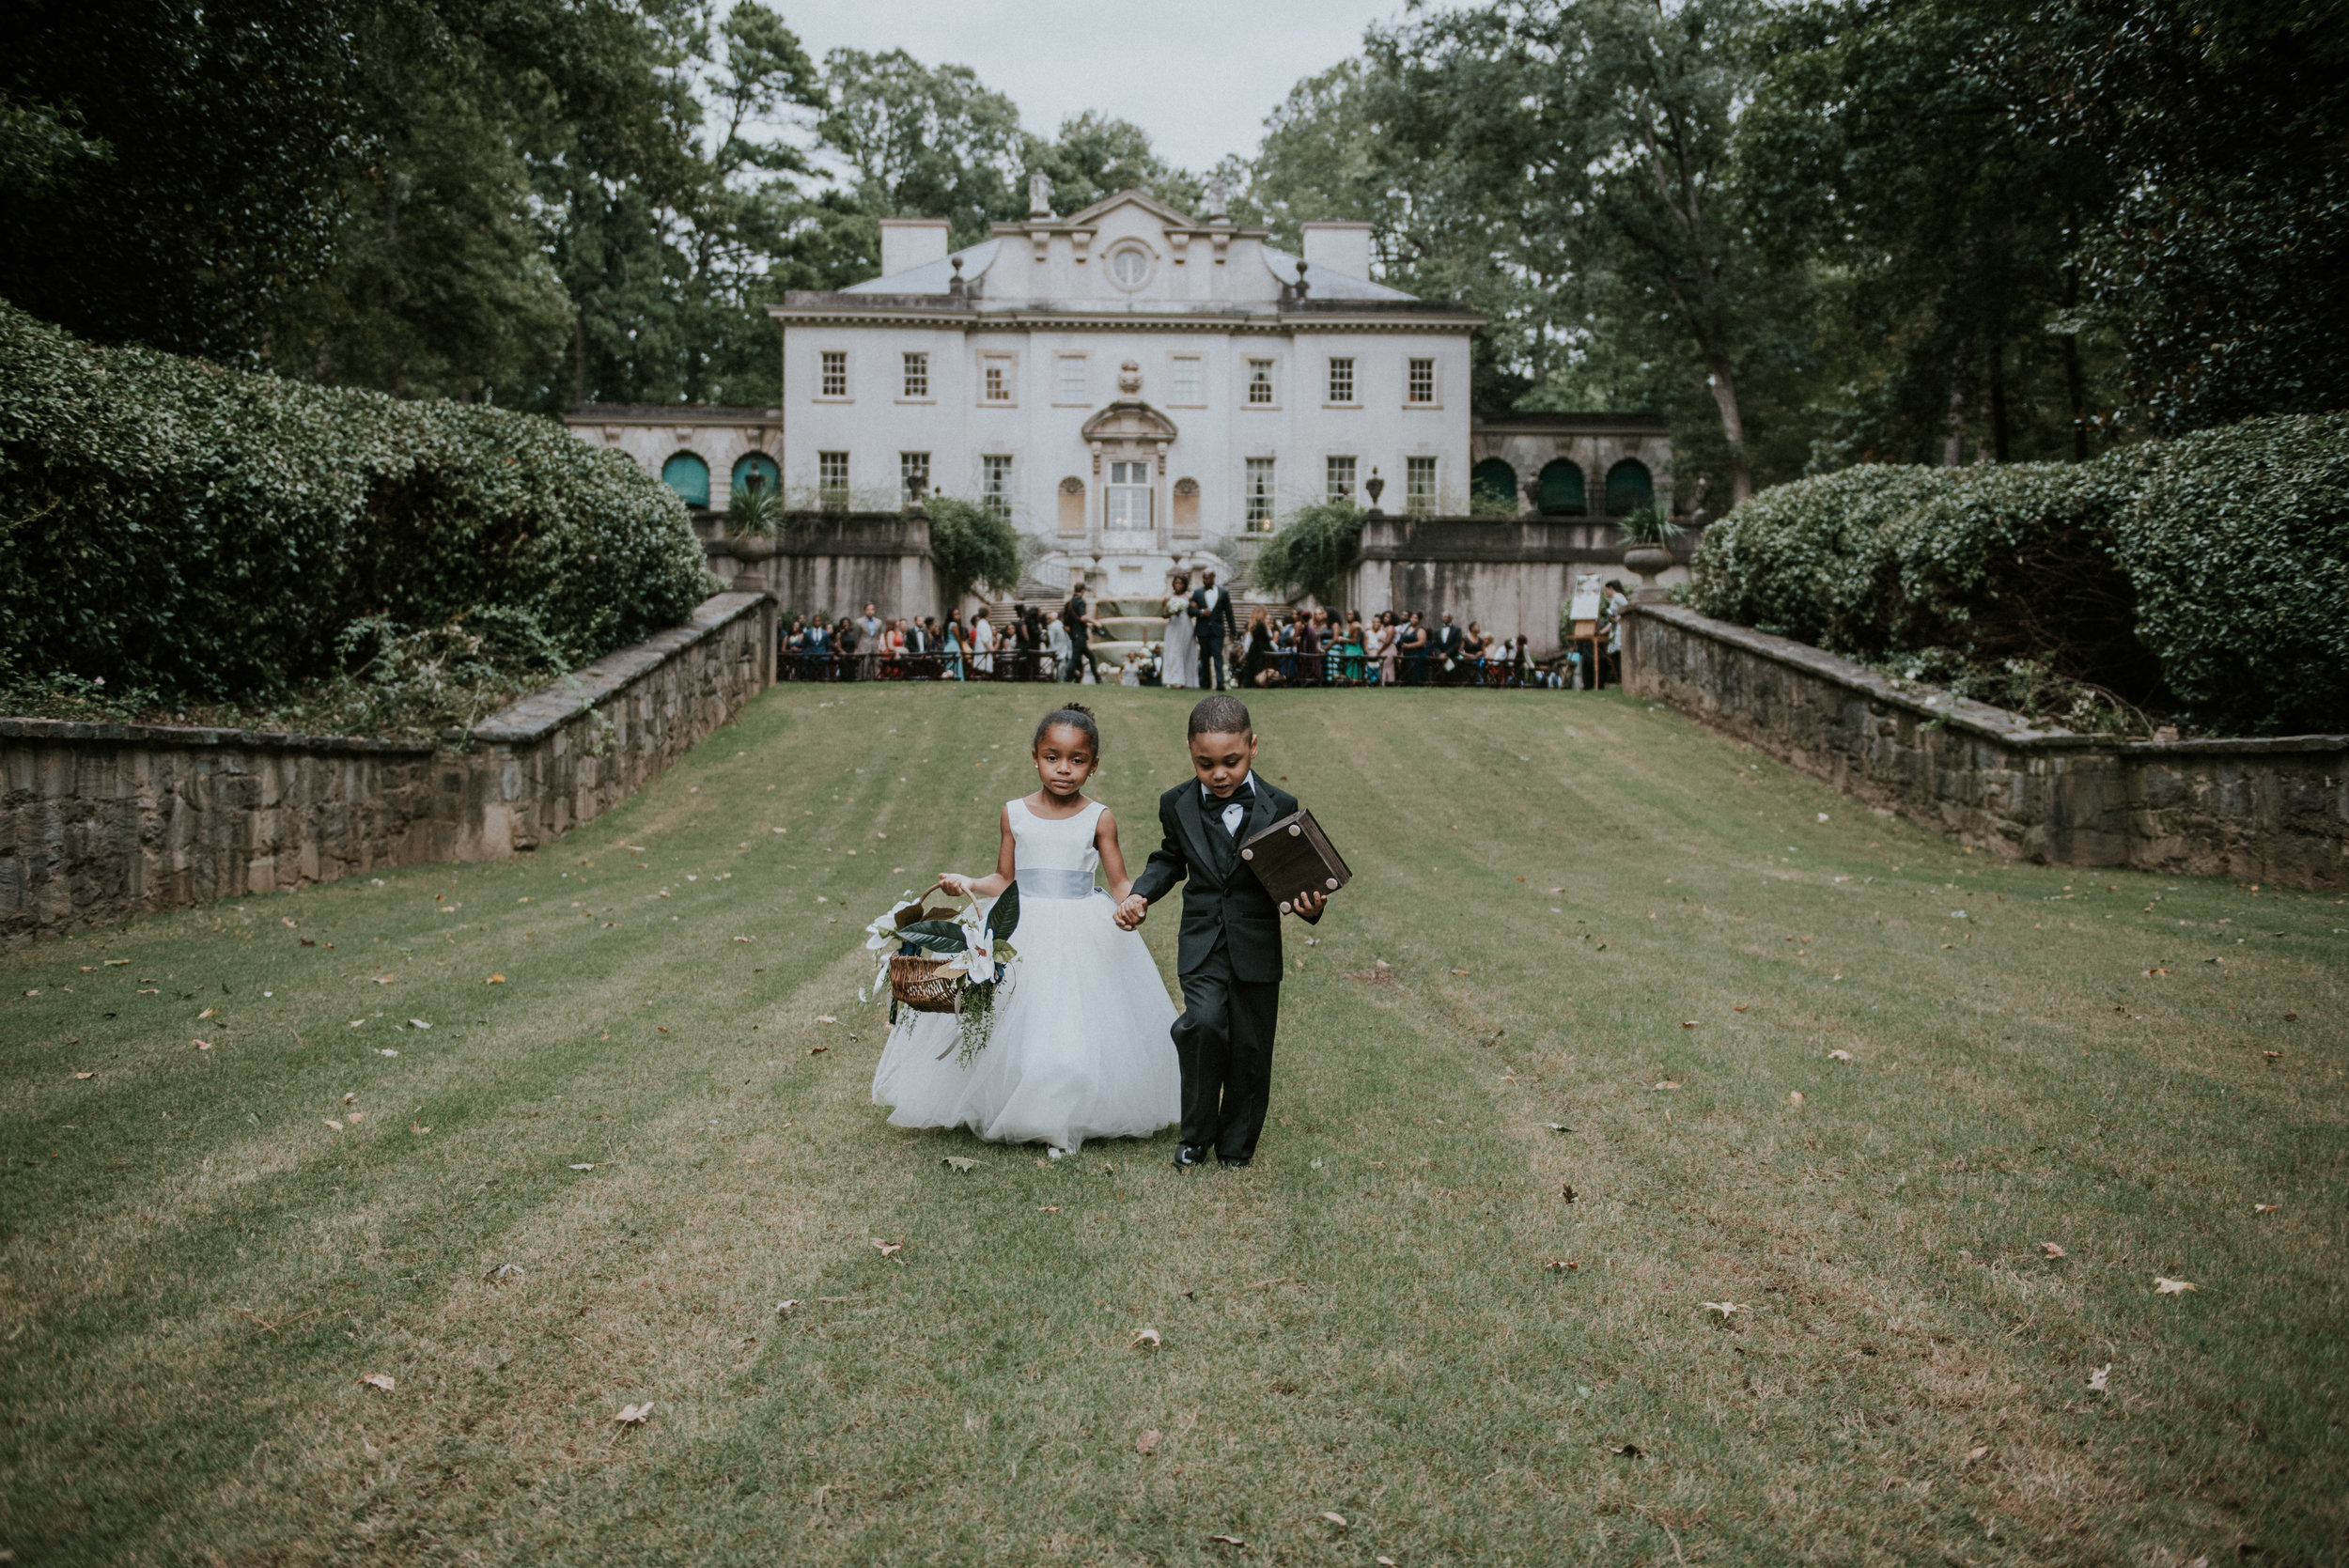 Flower girl and ring bearer with Swan House in the background in Atlanta, GA